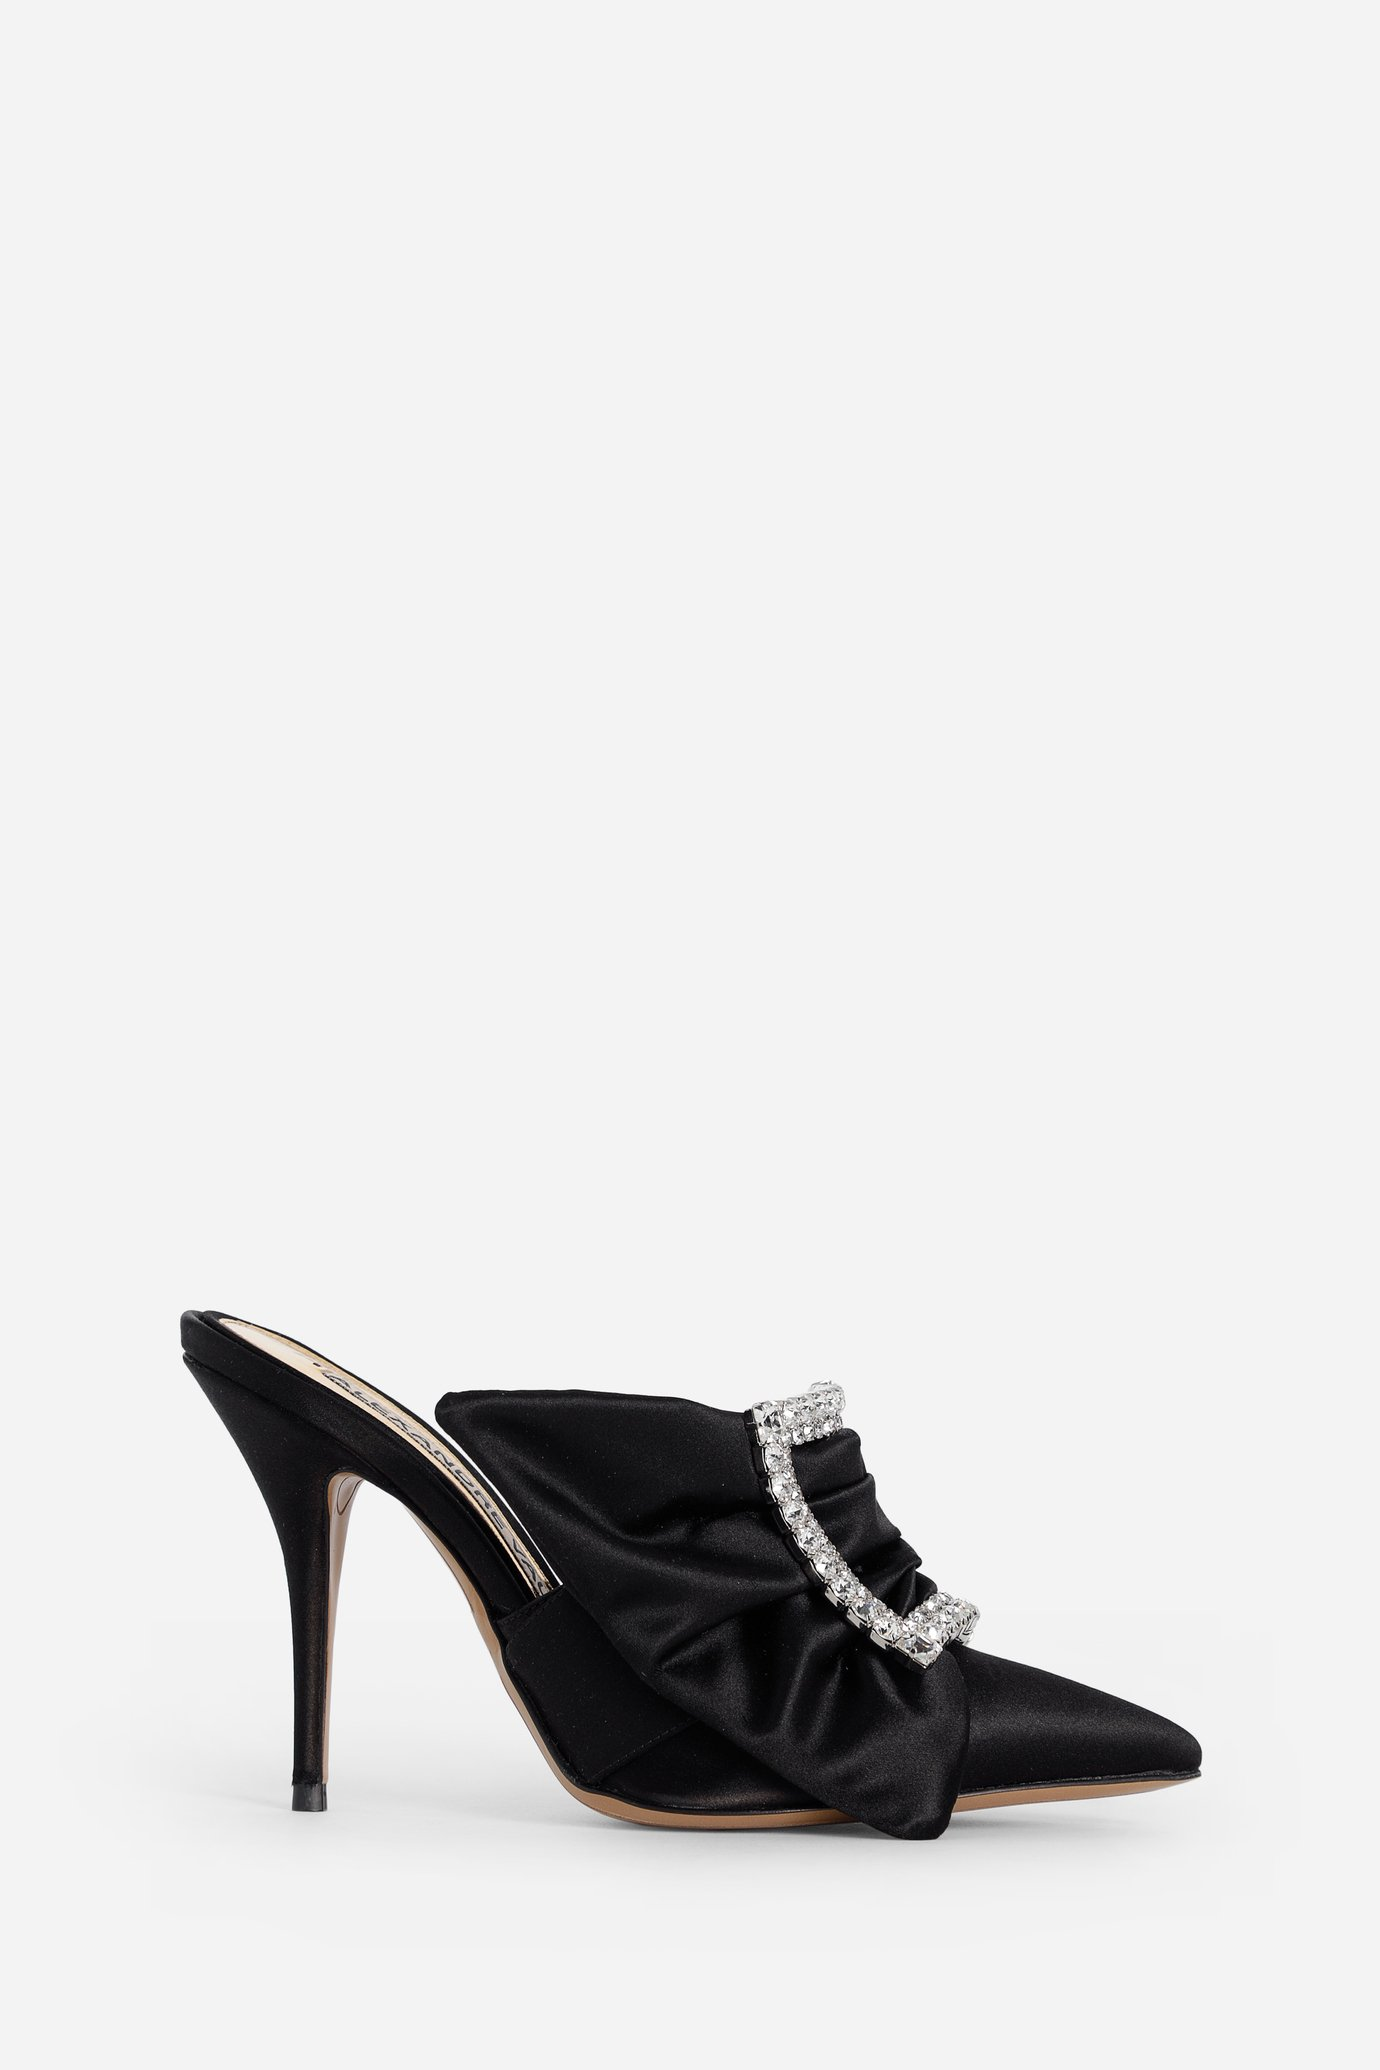 Image of Alexandre Vauthier Pumps